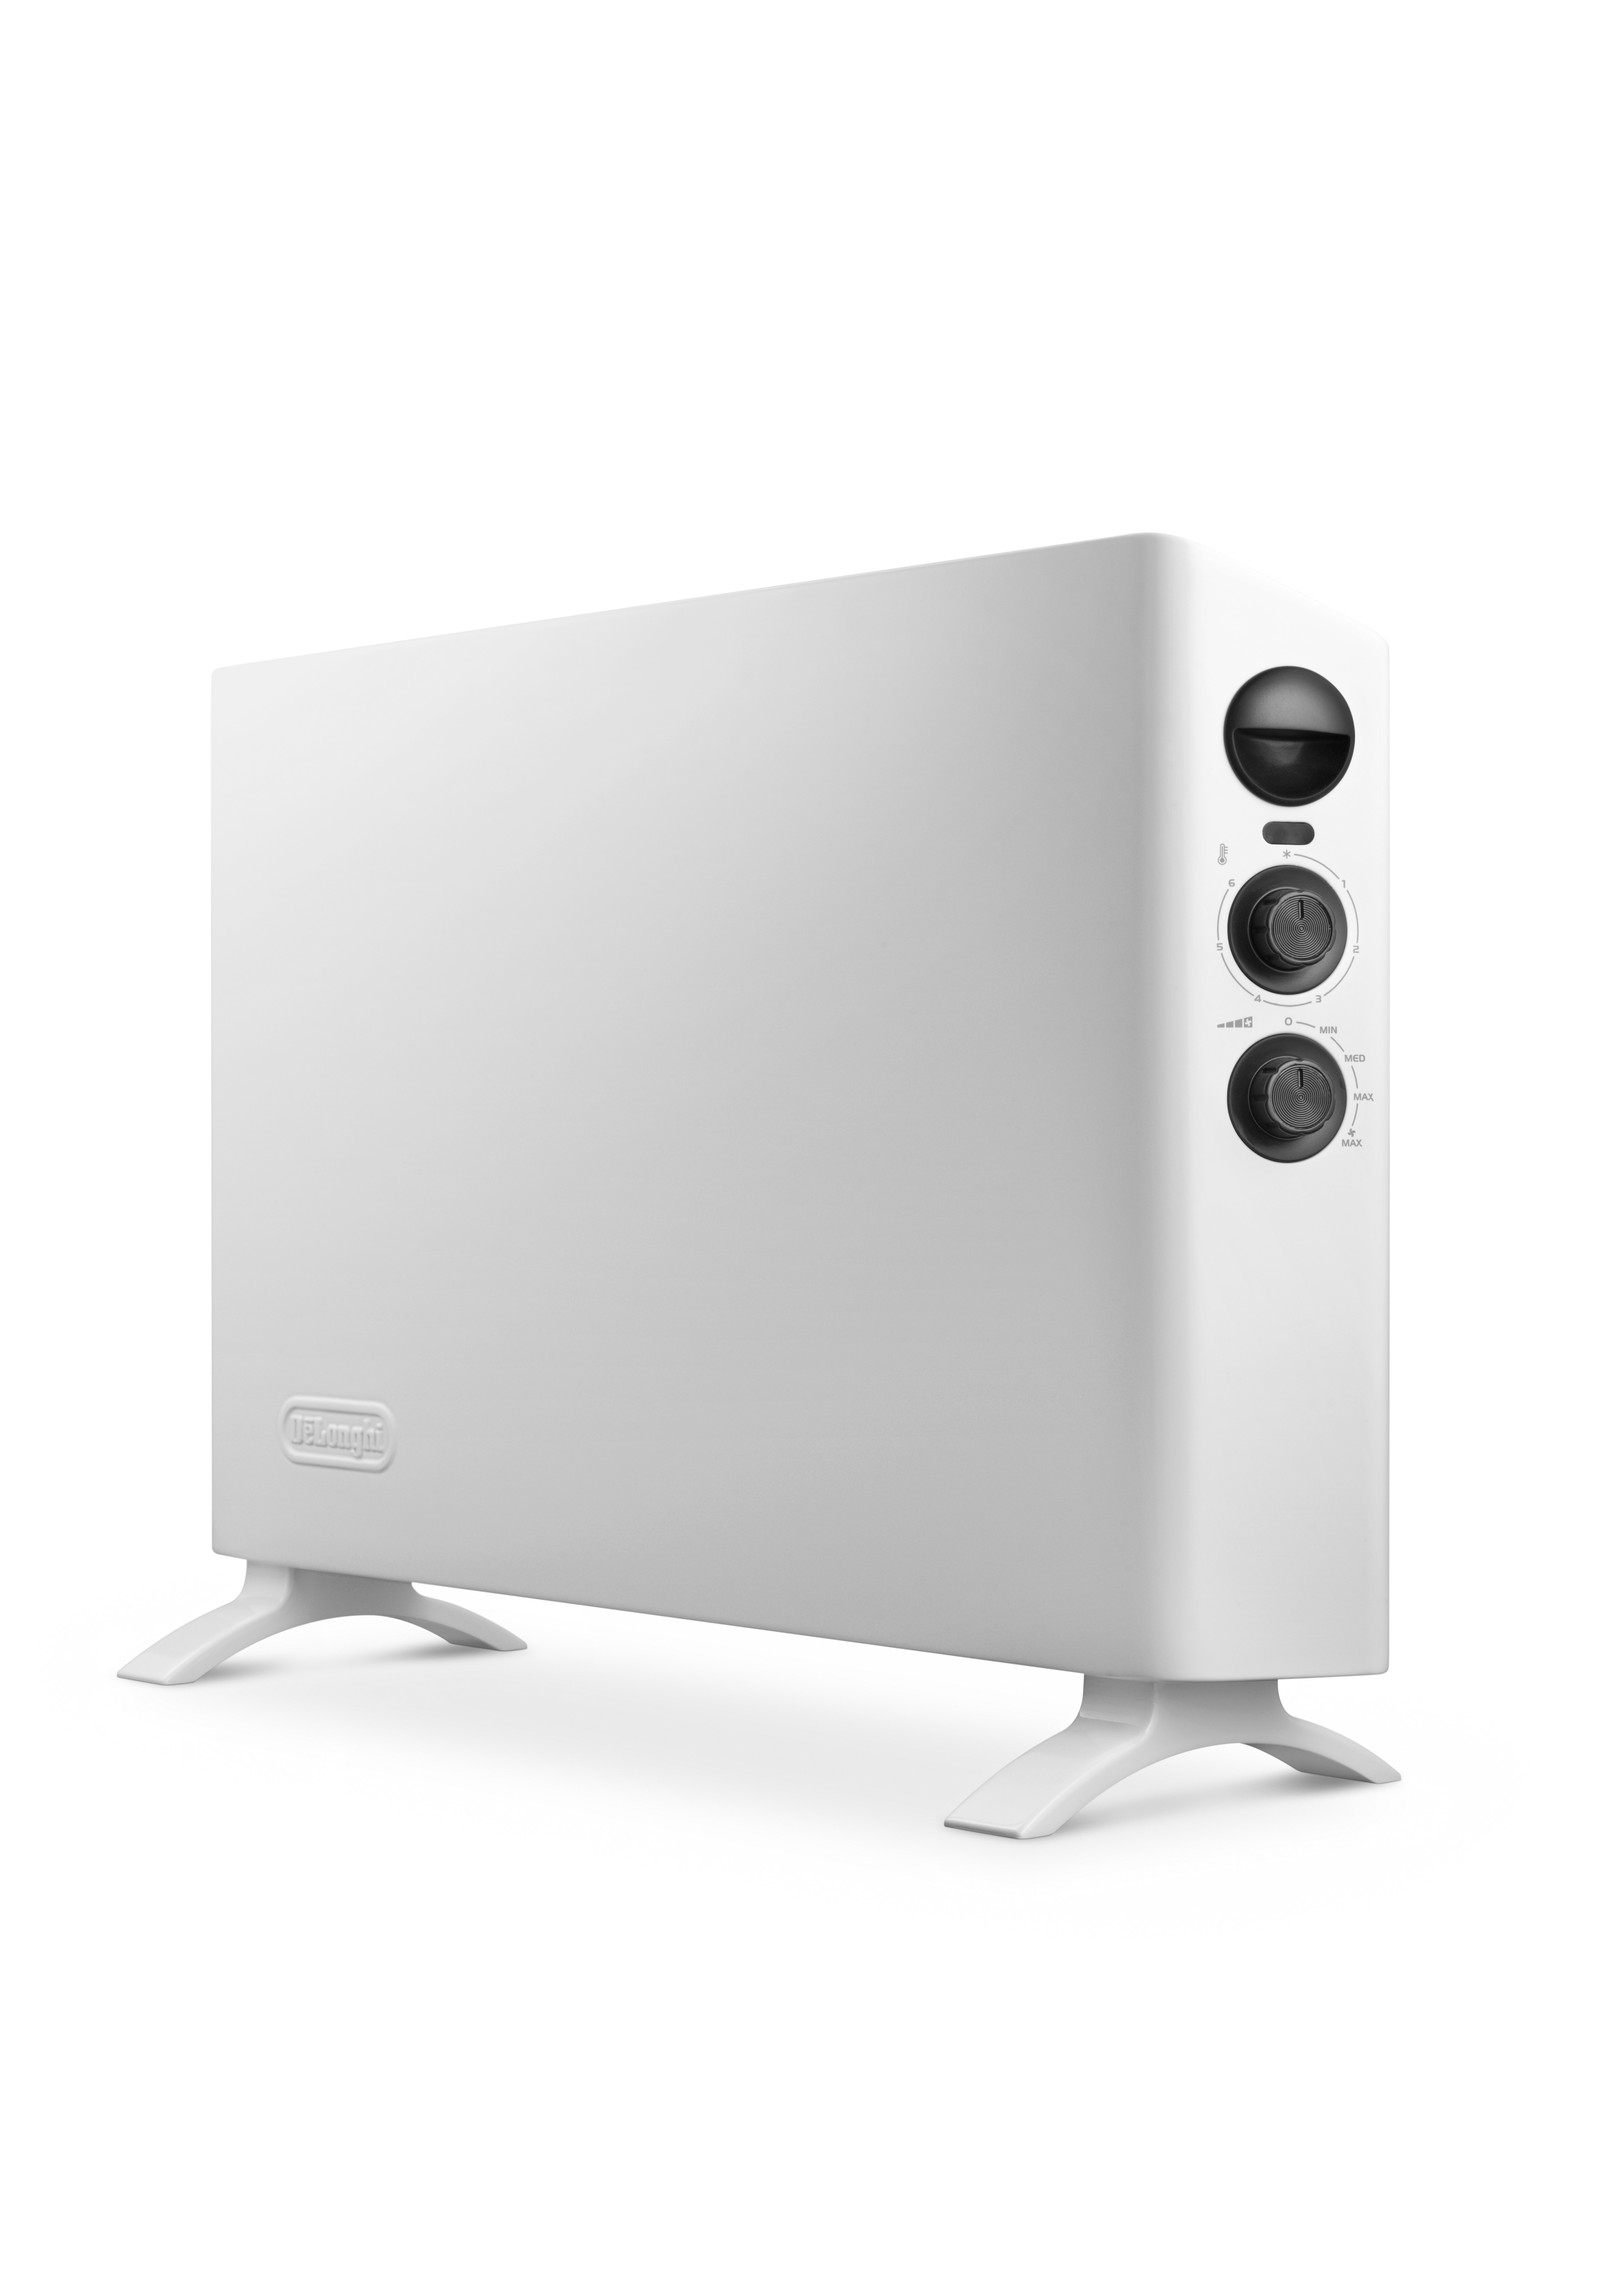 De'Longhi HSX Slim Style Full Room Panel Heater (Photo: Business Wire)